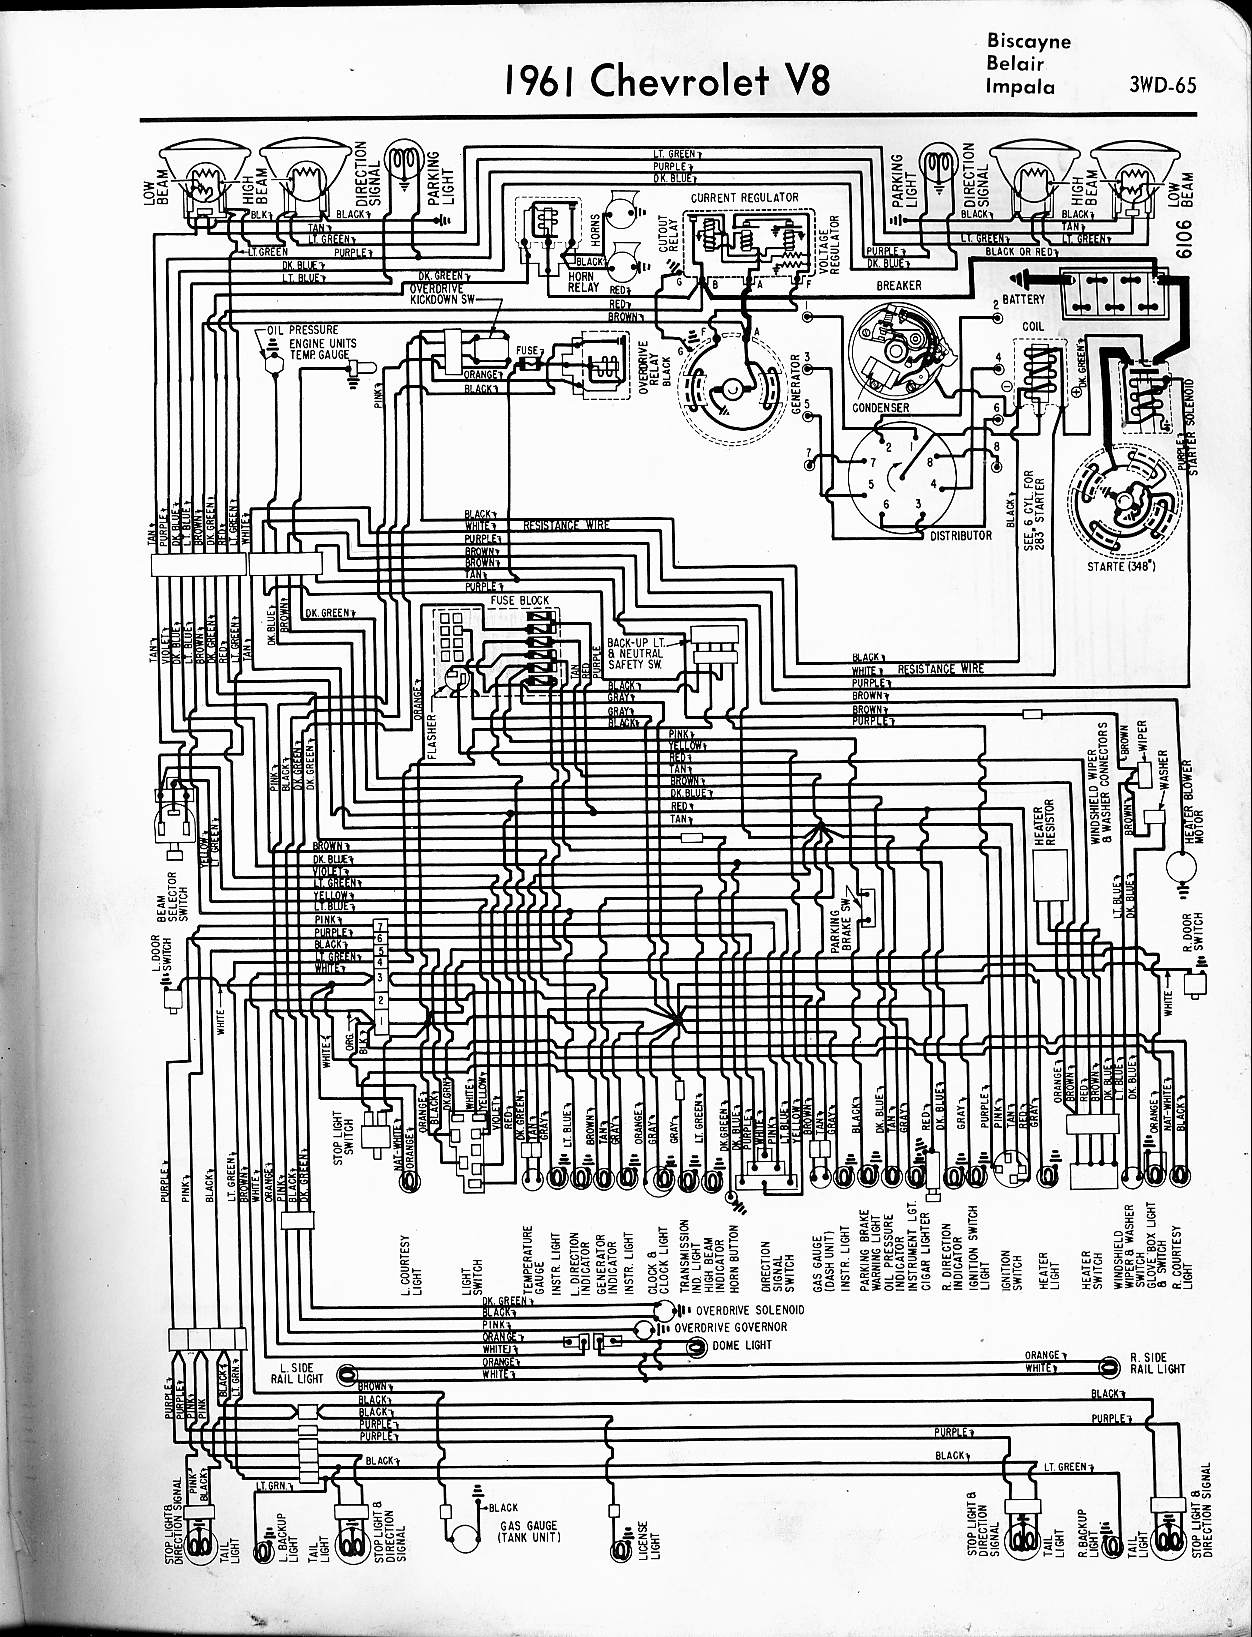 Wiring Diagram For 1964 Chevy Impala | Wiring Diagram on 1963 falcon speedometer, 1963 falcon exhaust, 1963 falcon brakes, 1963 falcon wheels, 1963 falcon transmission, 1963 falcon battery, 1963 falcon frame, 1963 falcon steering, 1963 falcon ignition coil, 1963 falcon seats, 1963 falcon cylinder head, 1963 falcon suspension, 1963 falcon radio, 1963 falcon distributor, 1963 falcon fuel pump, 1963 falcon brochure, 1963 falcon ford, 1963 falcon specifications, 1963 falcon engine, 1963 falcon radiator,